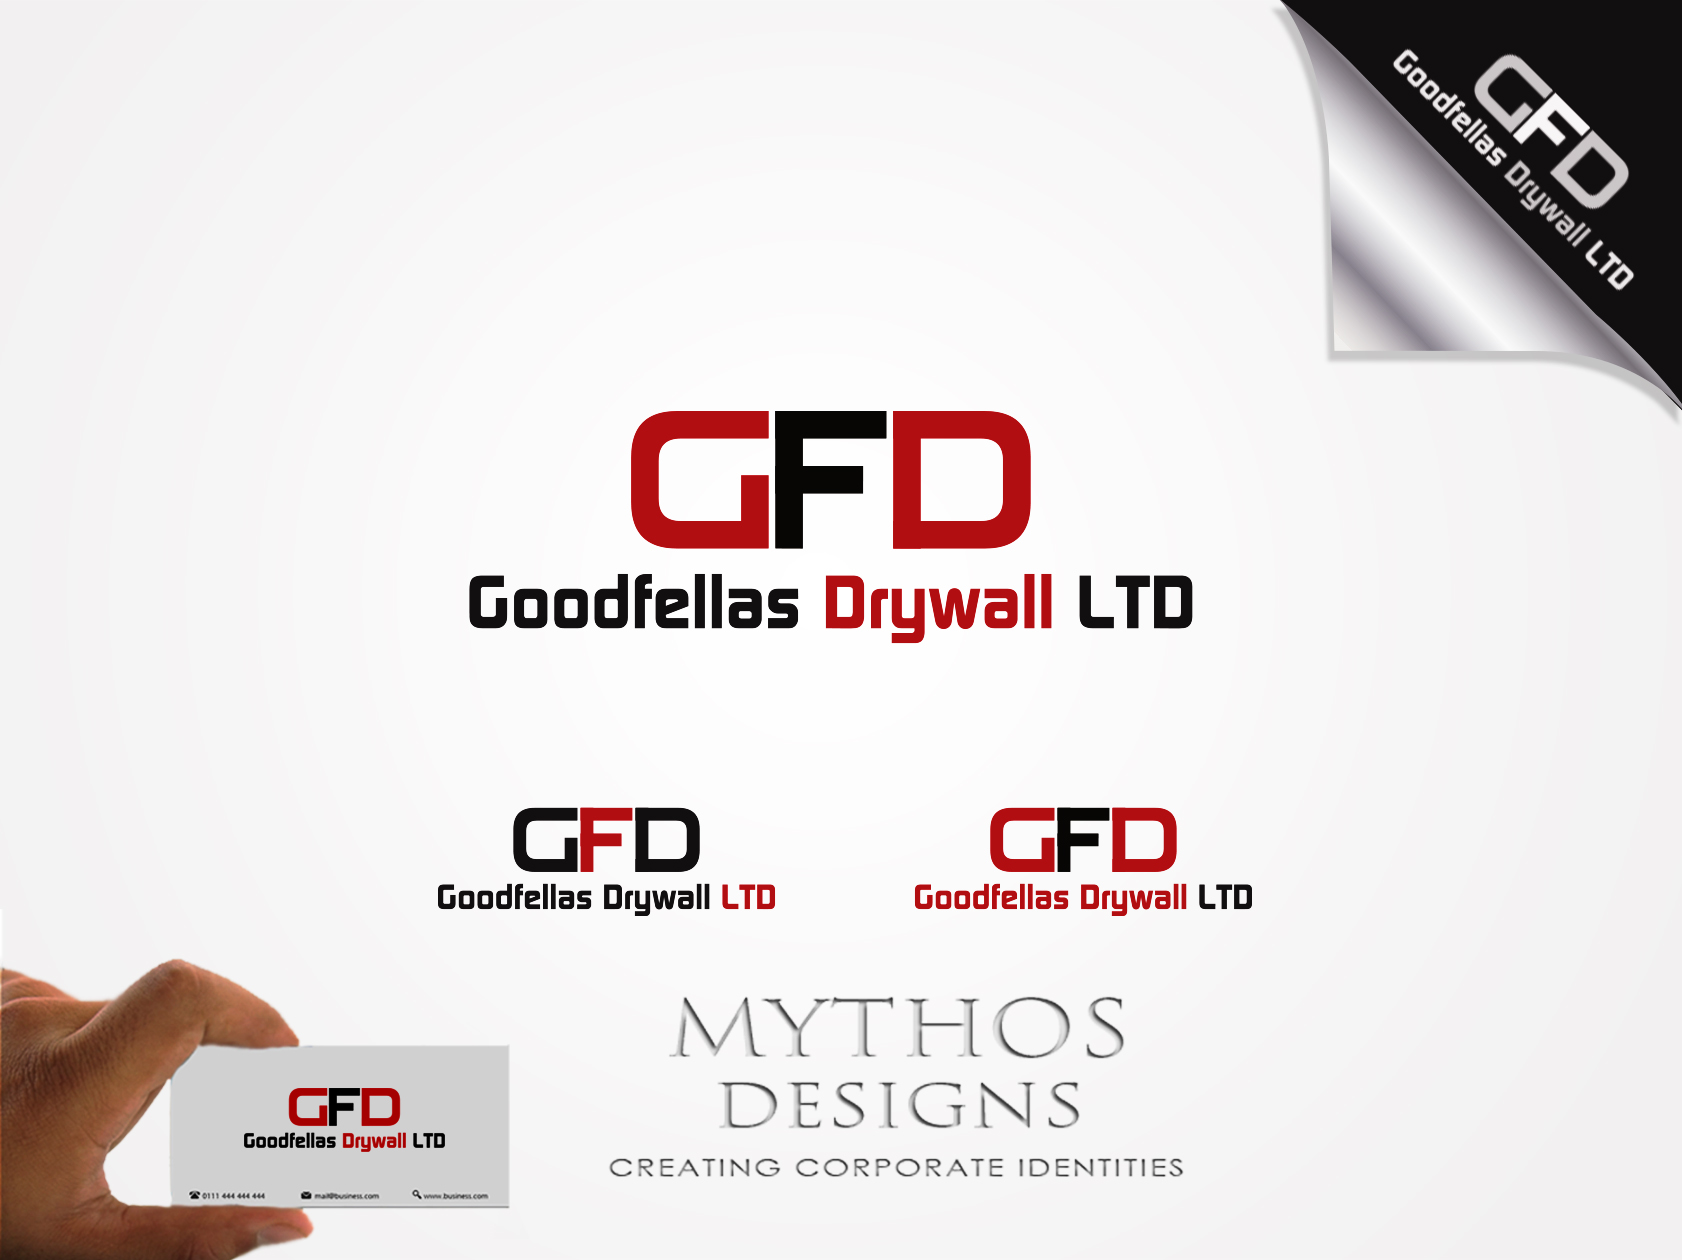 Logo Design by Mythos Designs - Entry No. 132 in the Logo Design Contest Creative Logo Design for Goodfellas Drywall.